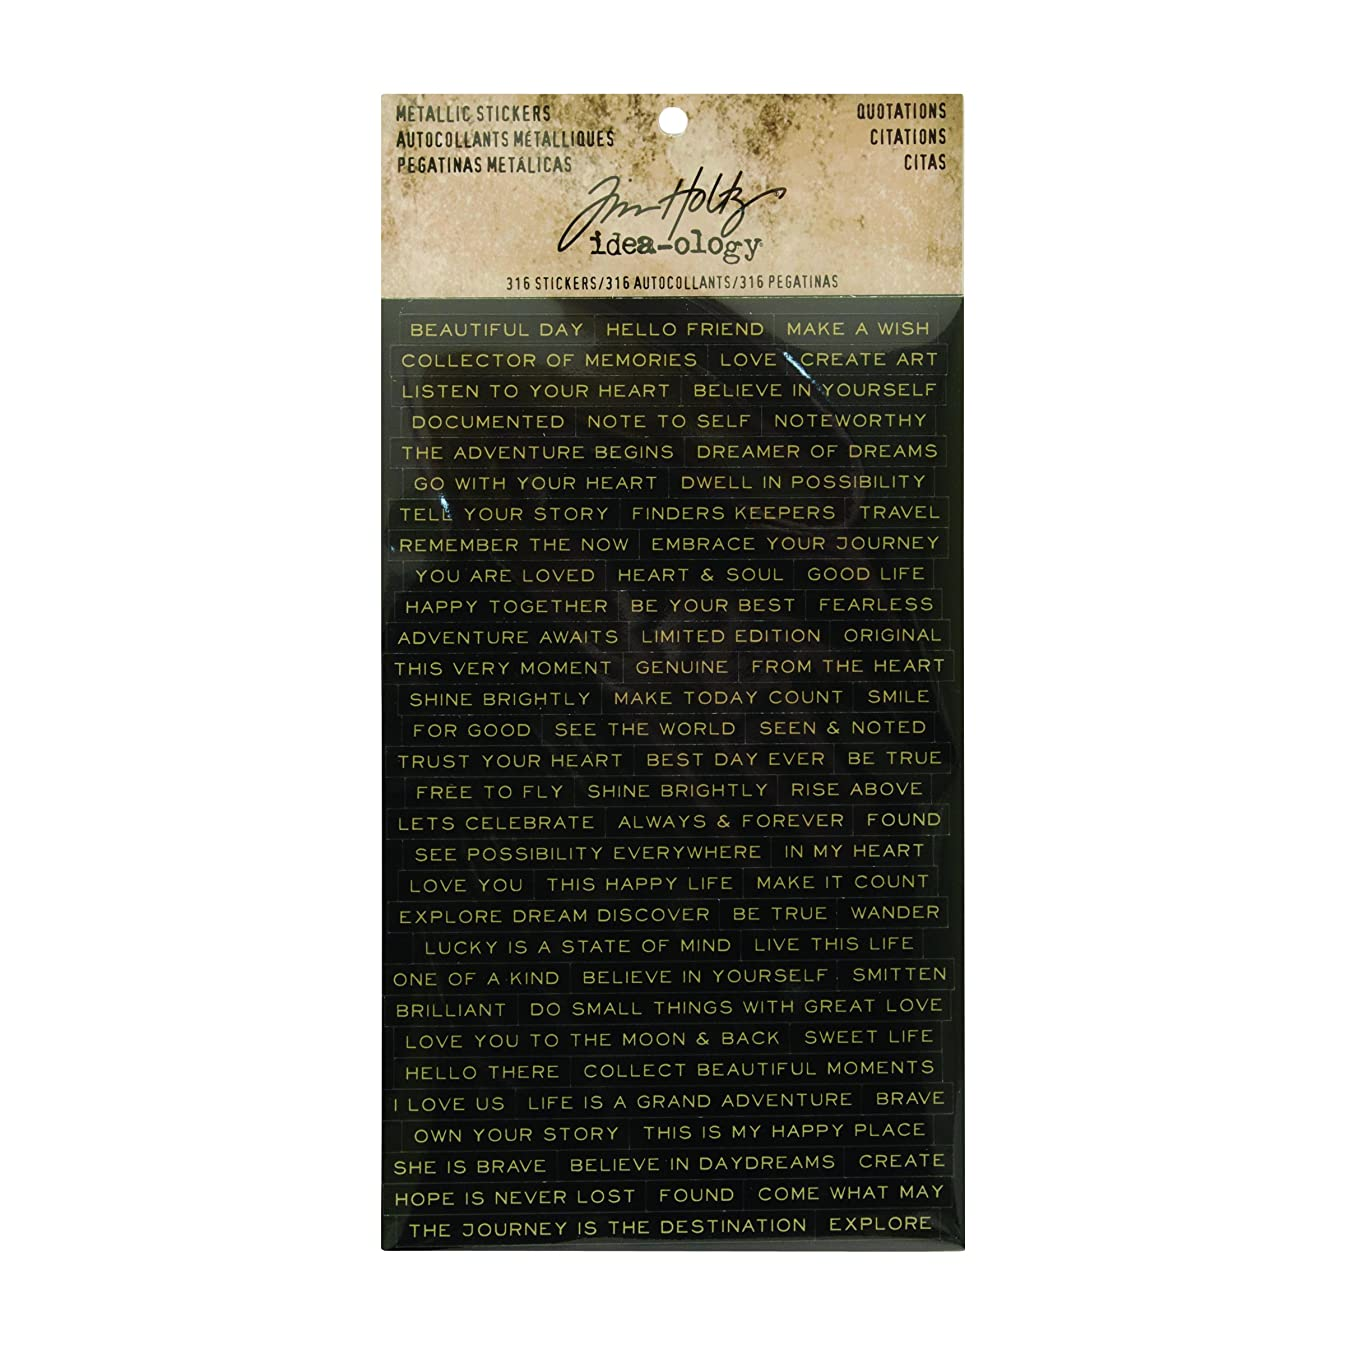 Quotations Metallic Stickers by Tim Holtz Idea-ology, 0.25 Inch Tall Each, 316 Word Stickers (TH93559)